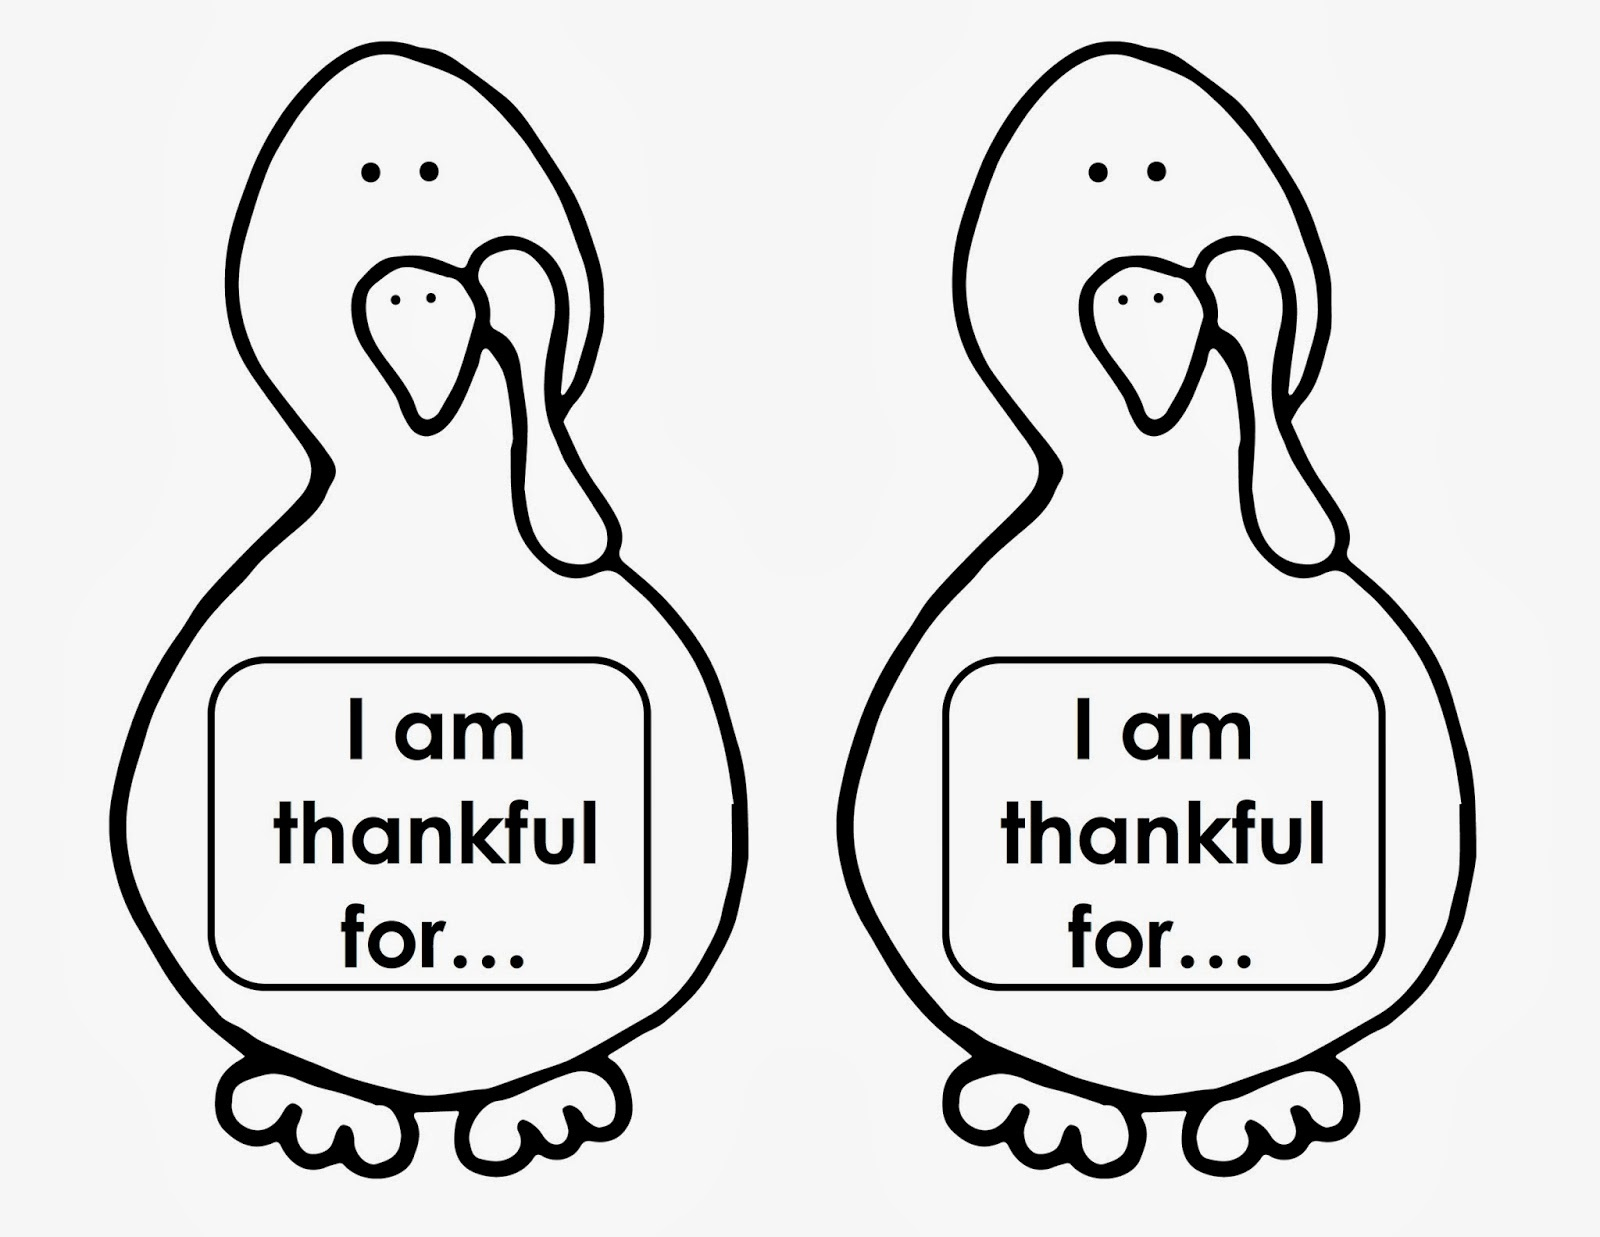 Printable Turkey Templates – Happy Easter & Thanksgiving 2018 - Free Printable Thanksgiving Turkey Template